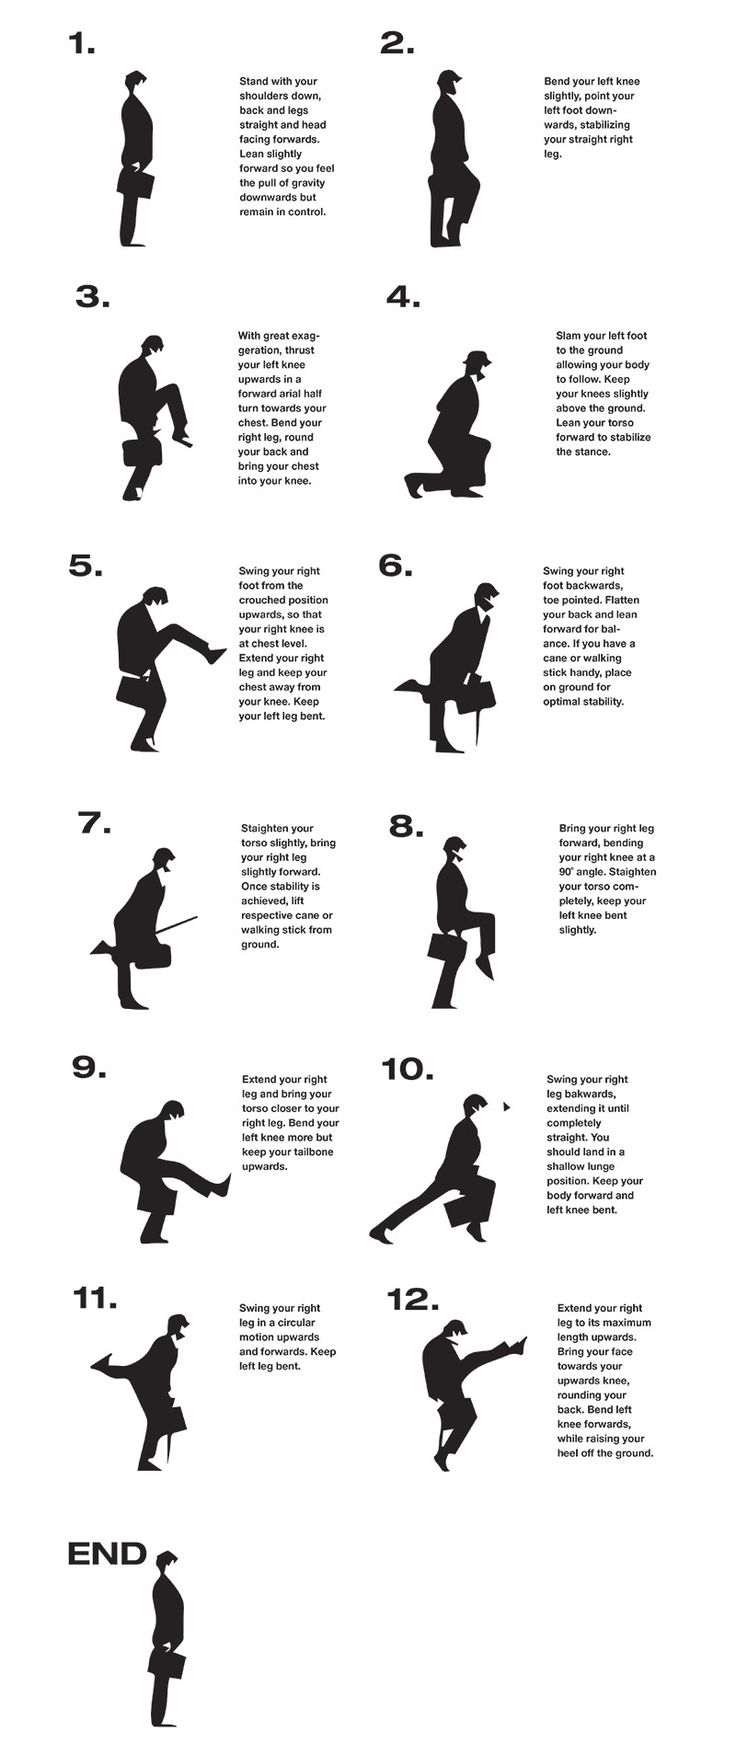 How To : The Ministry Of Silly Walks